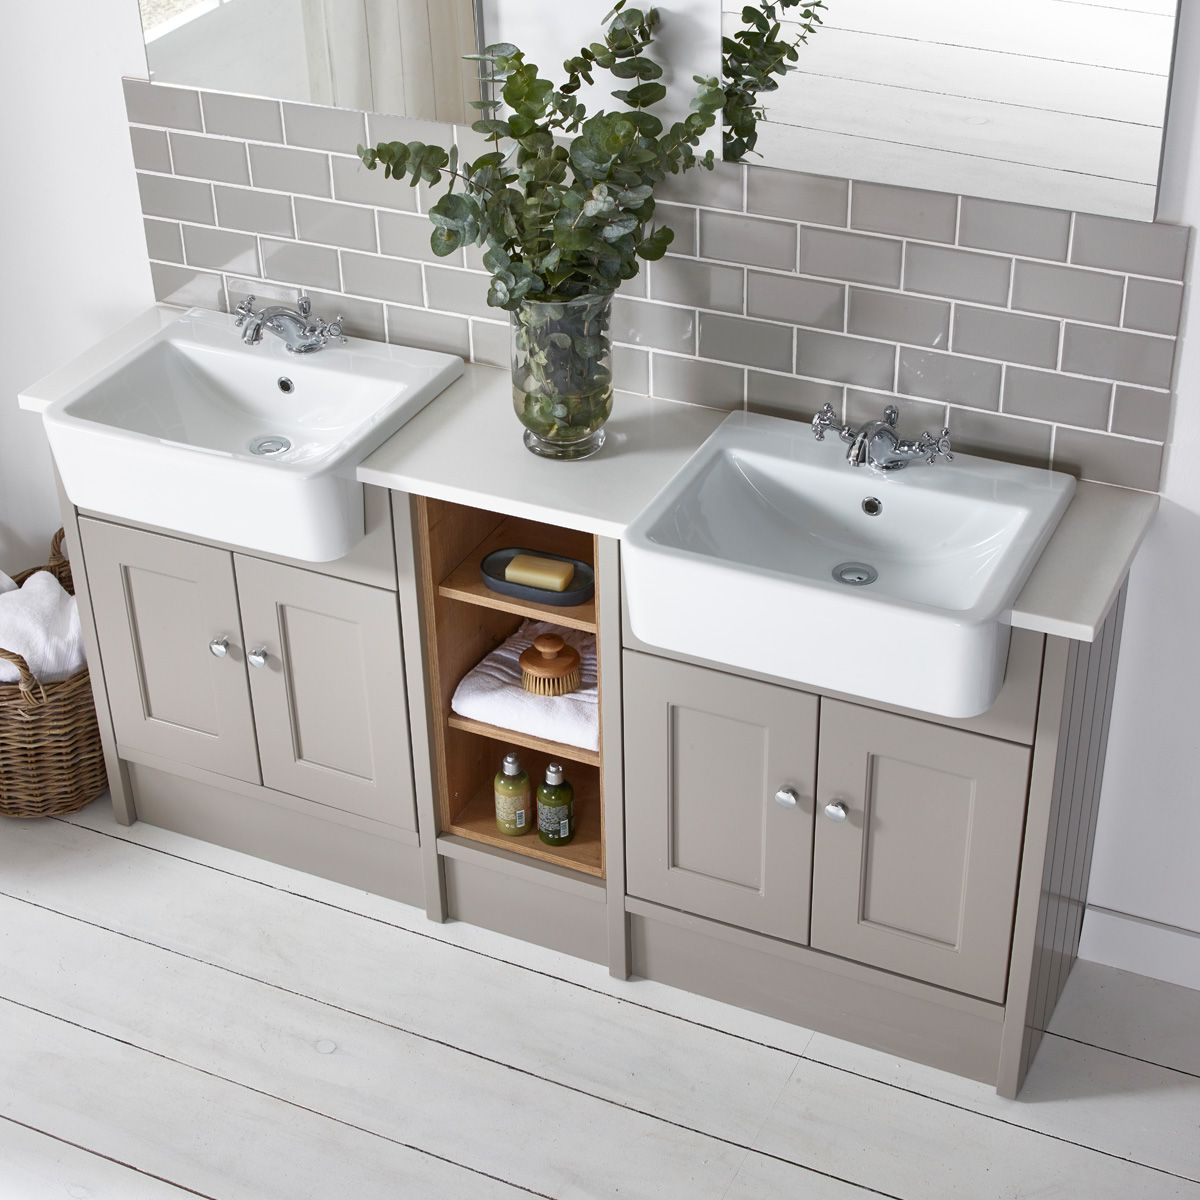 Quality bathroom furniture uk - A Uk Supplier For High Quality Luxurious Fitted Bathroom Furniture Roper Rhodes Has A Wide Selection Of Fitted Furniture Styles And Finishes For You To